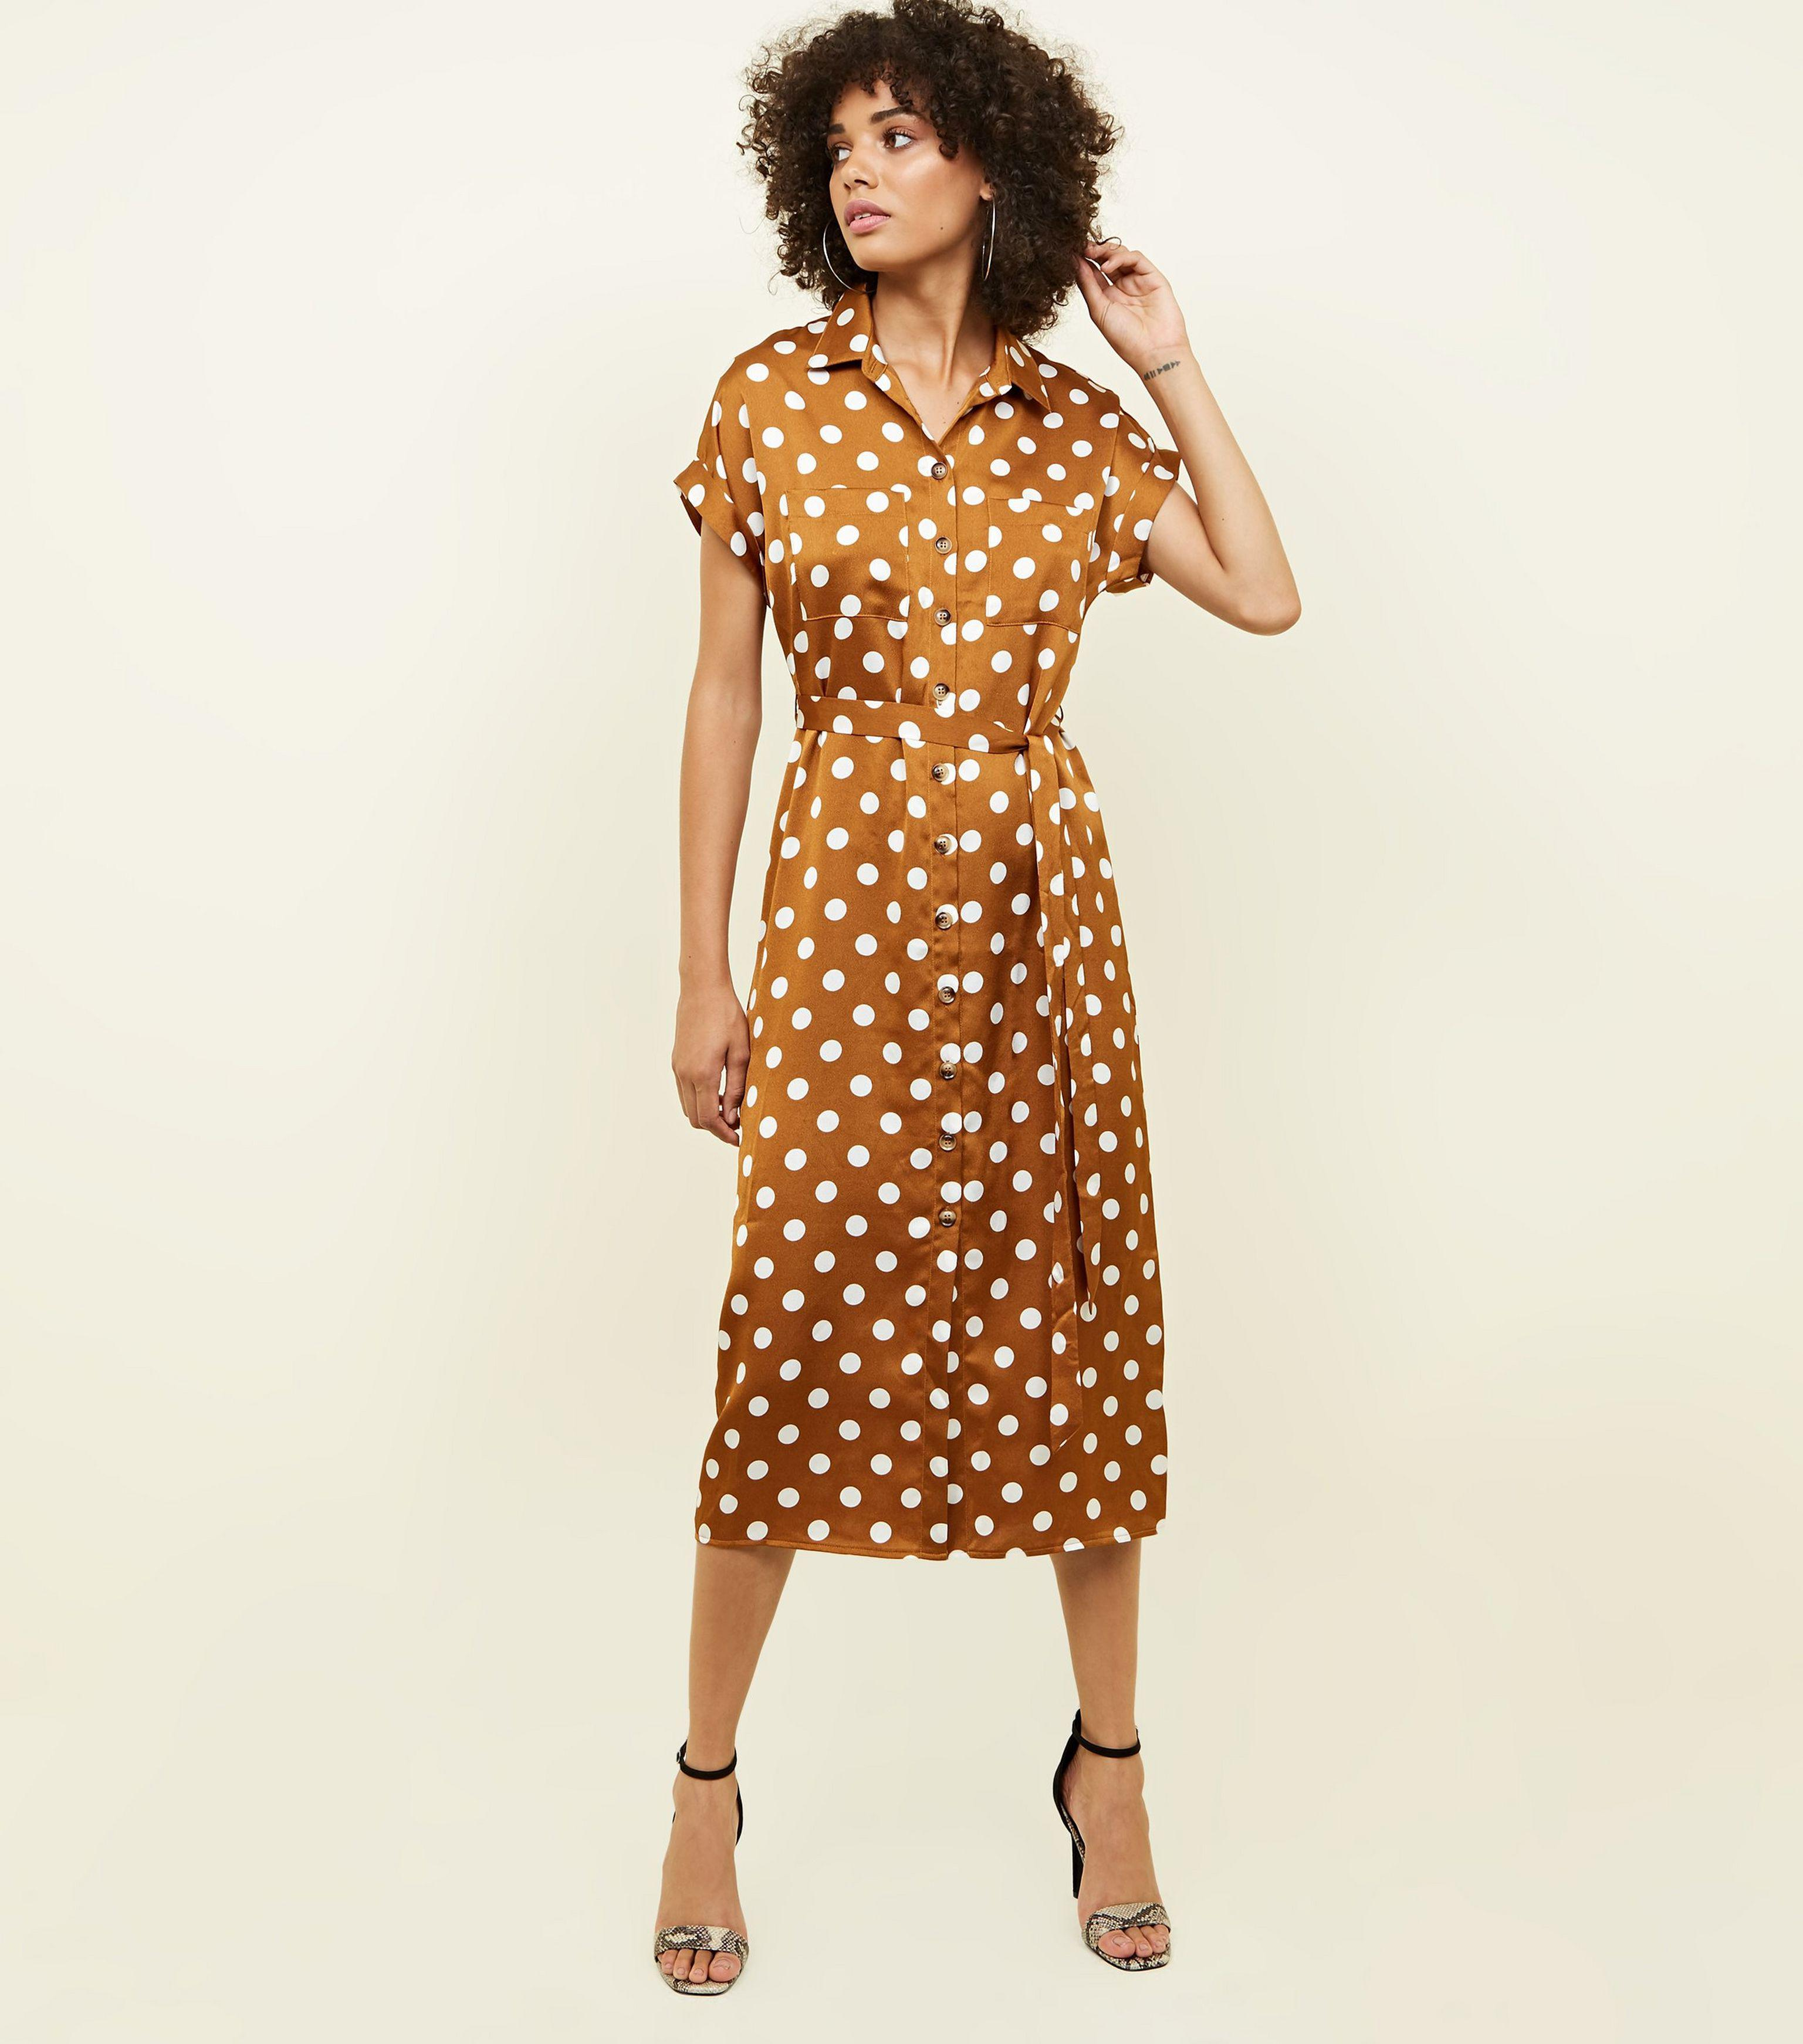 bf07b46625 New Look Orange Spot Print Satin Midi Shirt Dress in Orange - Lyst